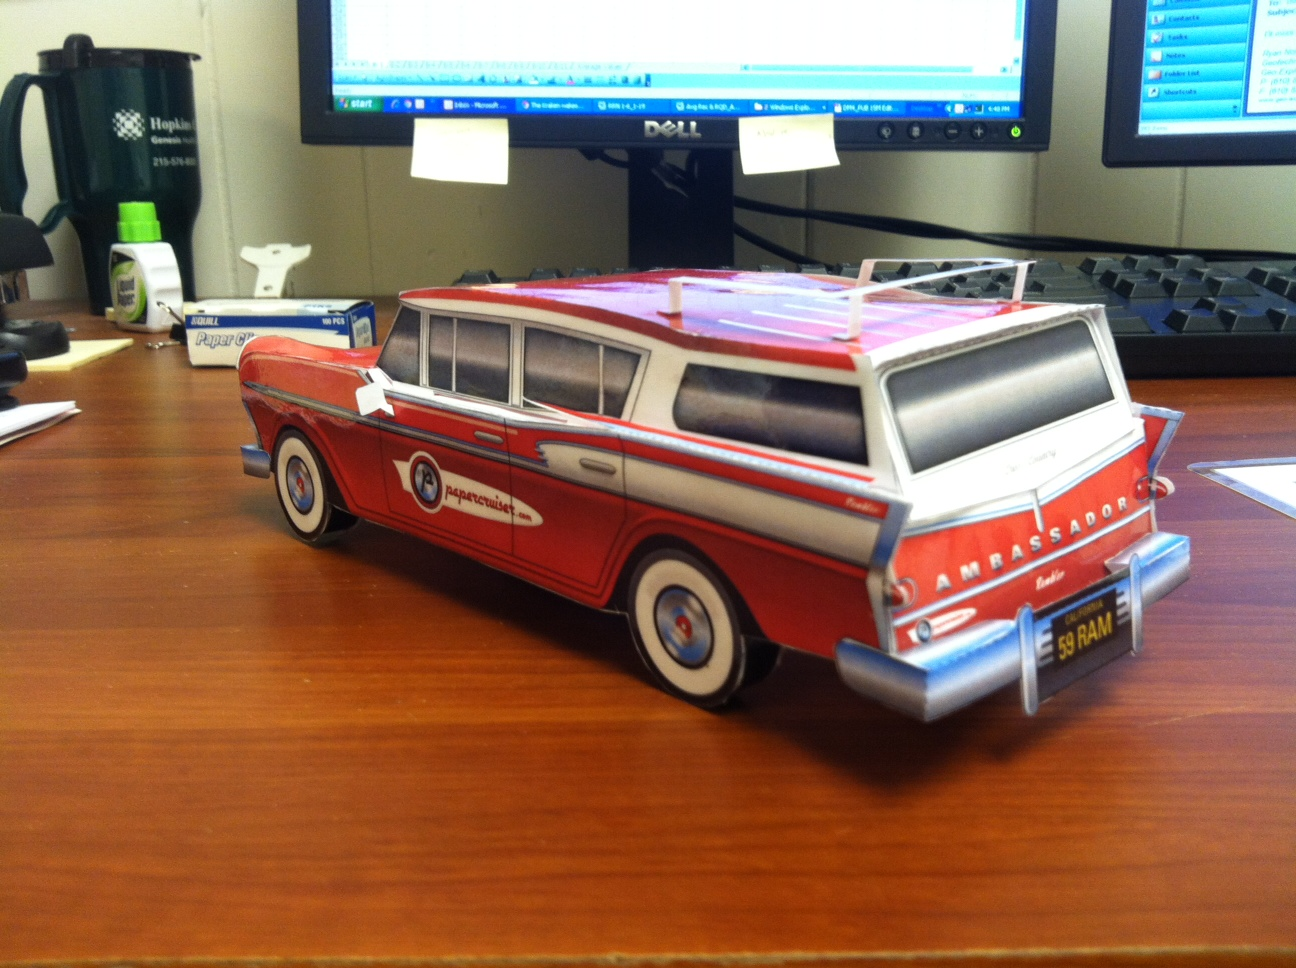 Picture of Papercruiser Model Cars